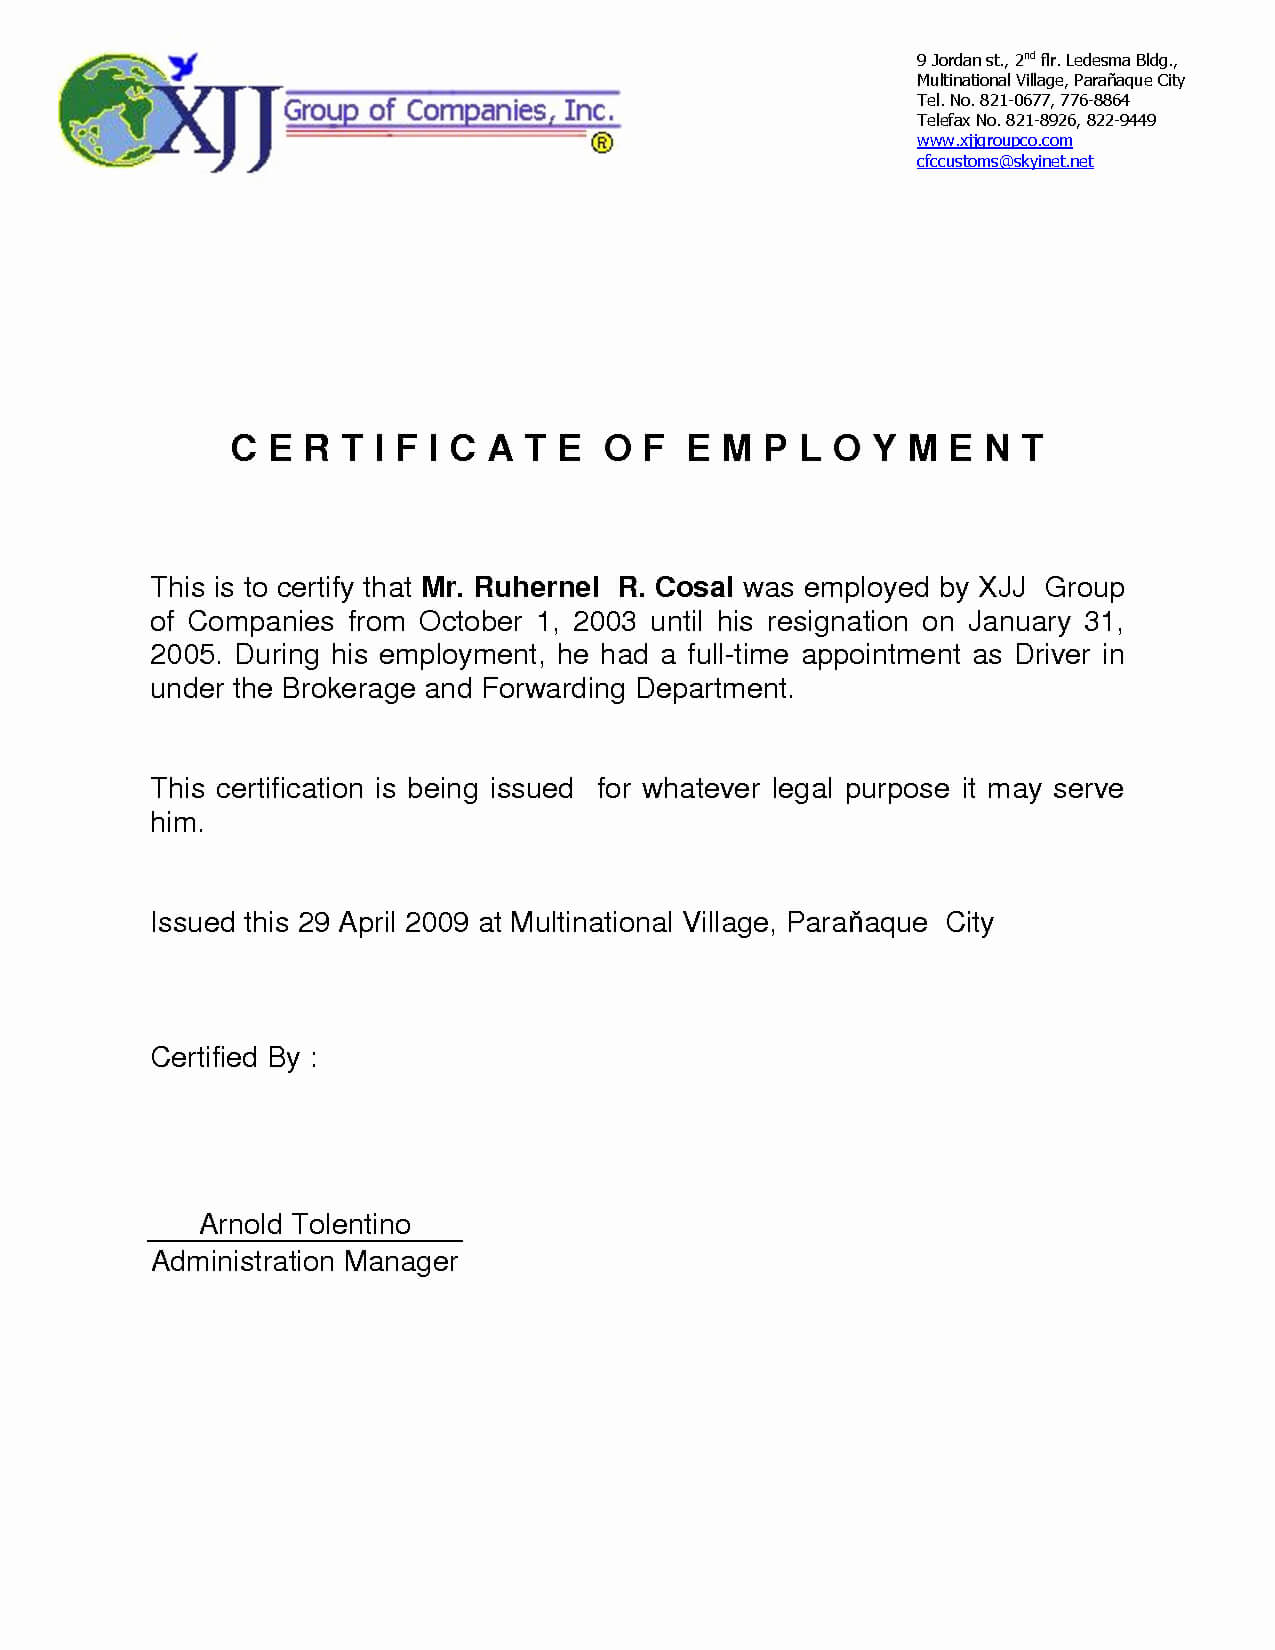 Certificate Of Employment Template Best Of Sample Pertaining To Certificate Of Employment Template